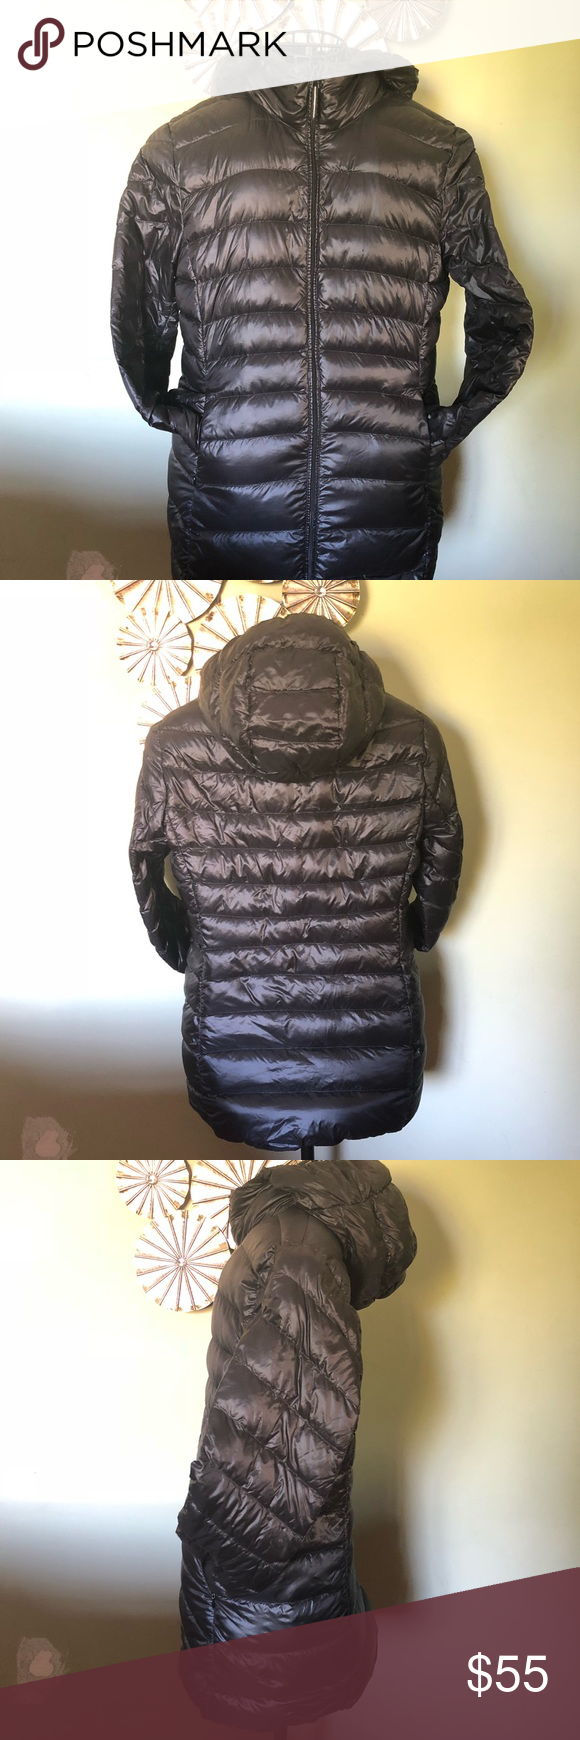 UNIQLO Black Light Down Hooded Puffer Jacket Sz L Uniqlo